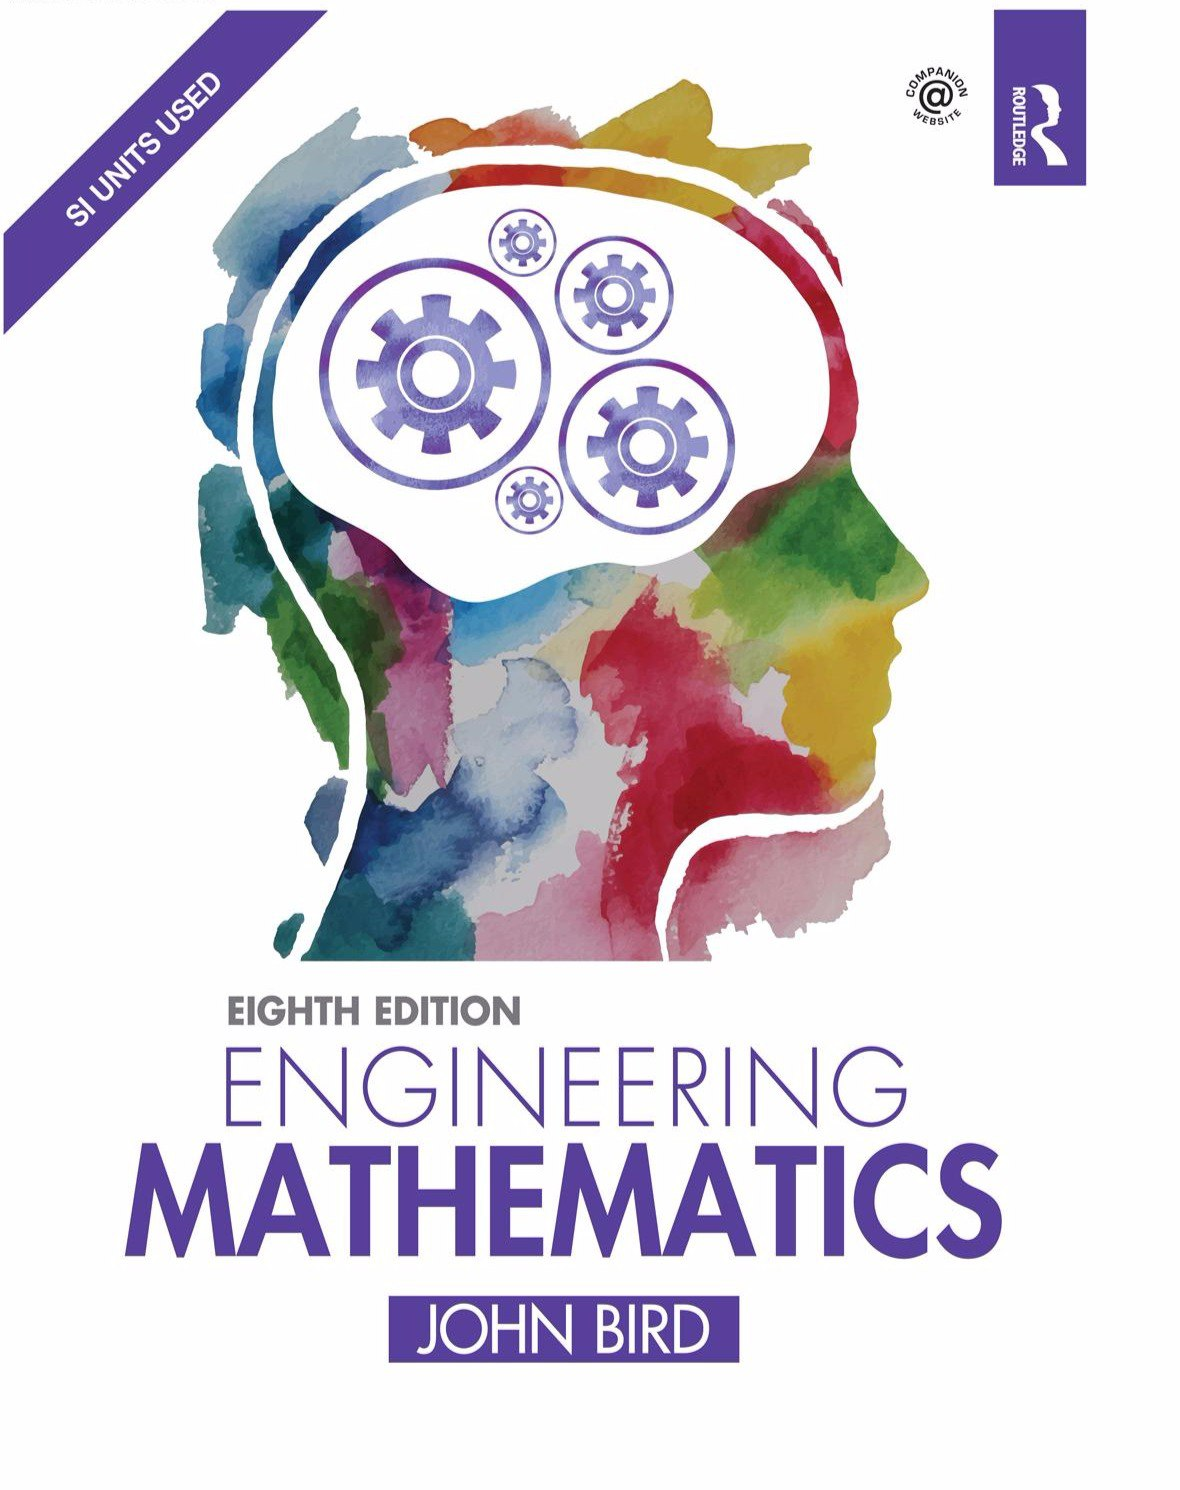 Engineering mathematics by stroud free download pdf